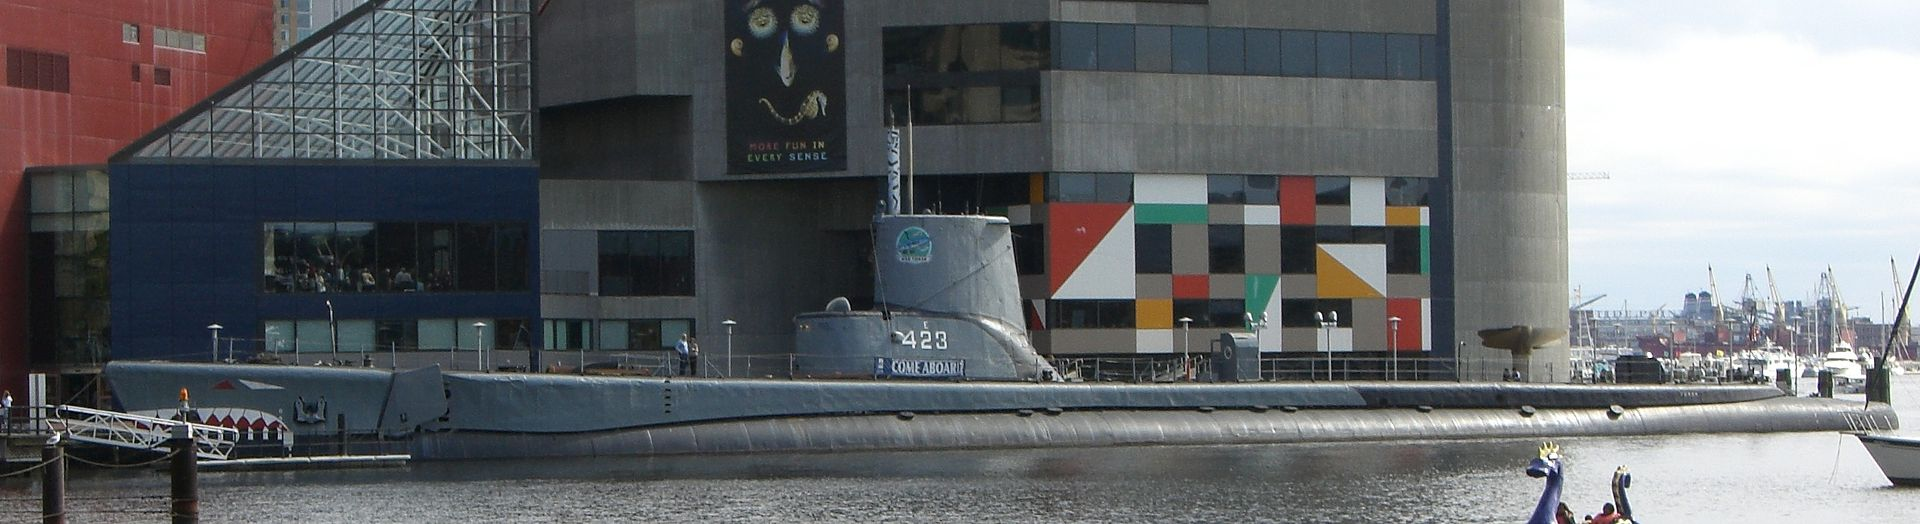 The port-side profile of the submarine